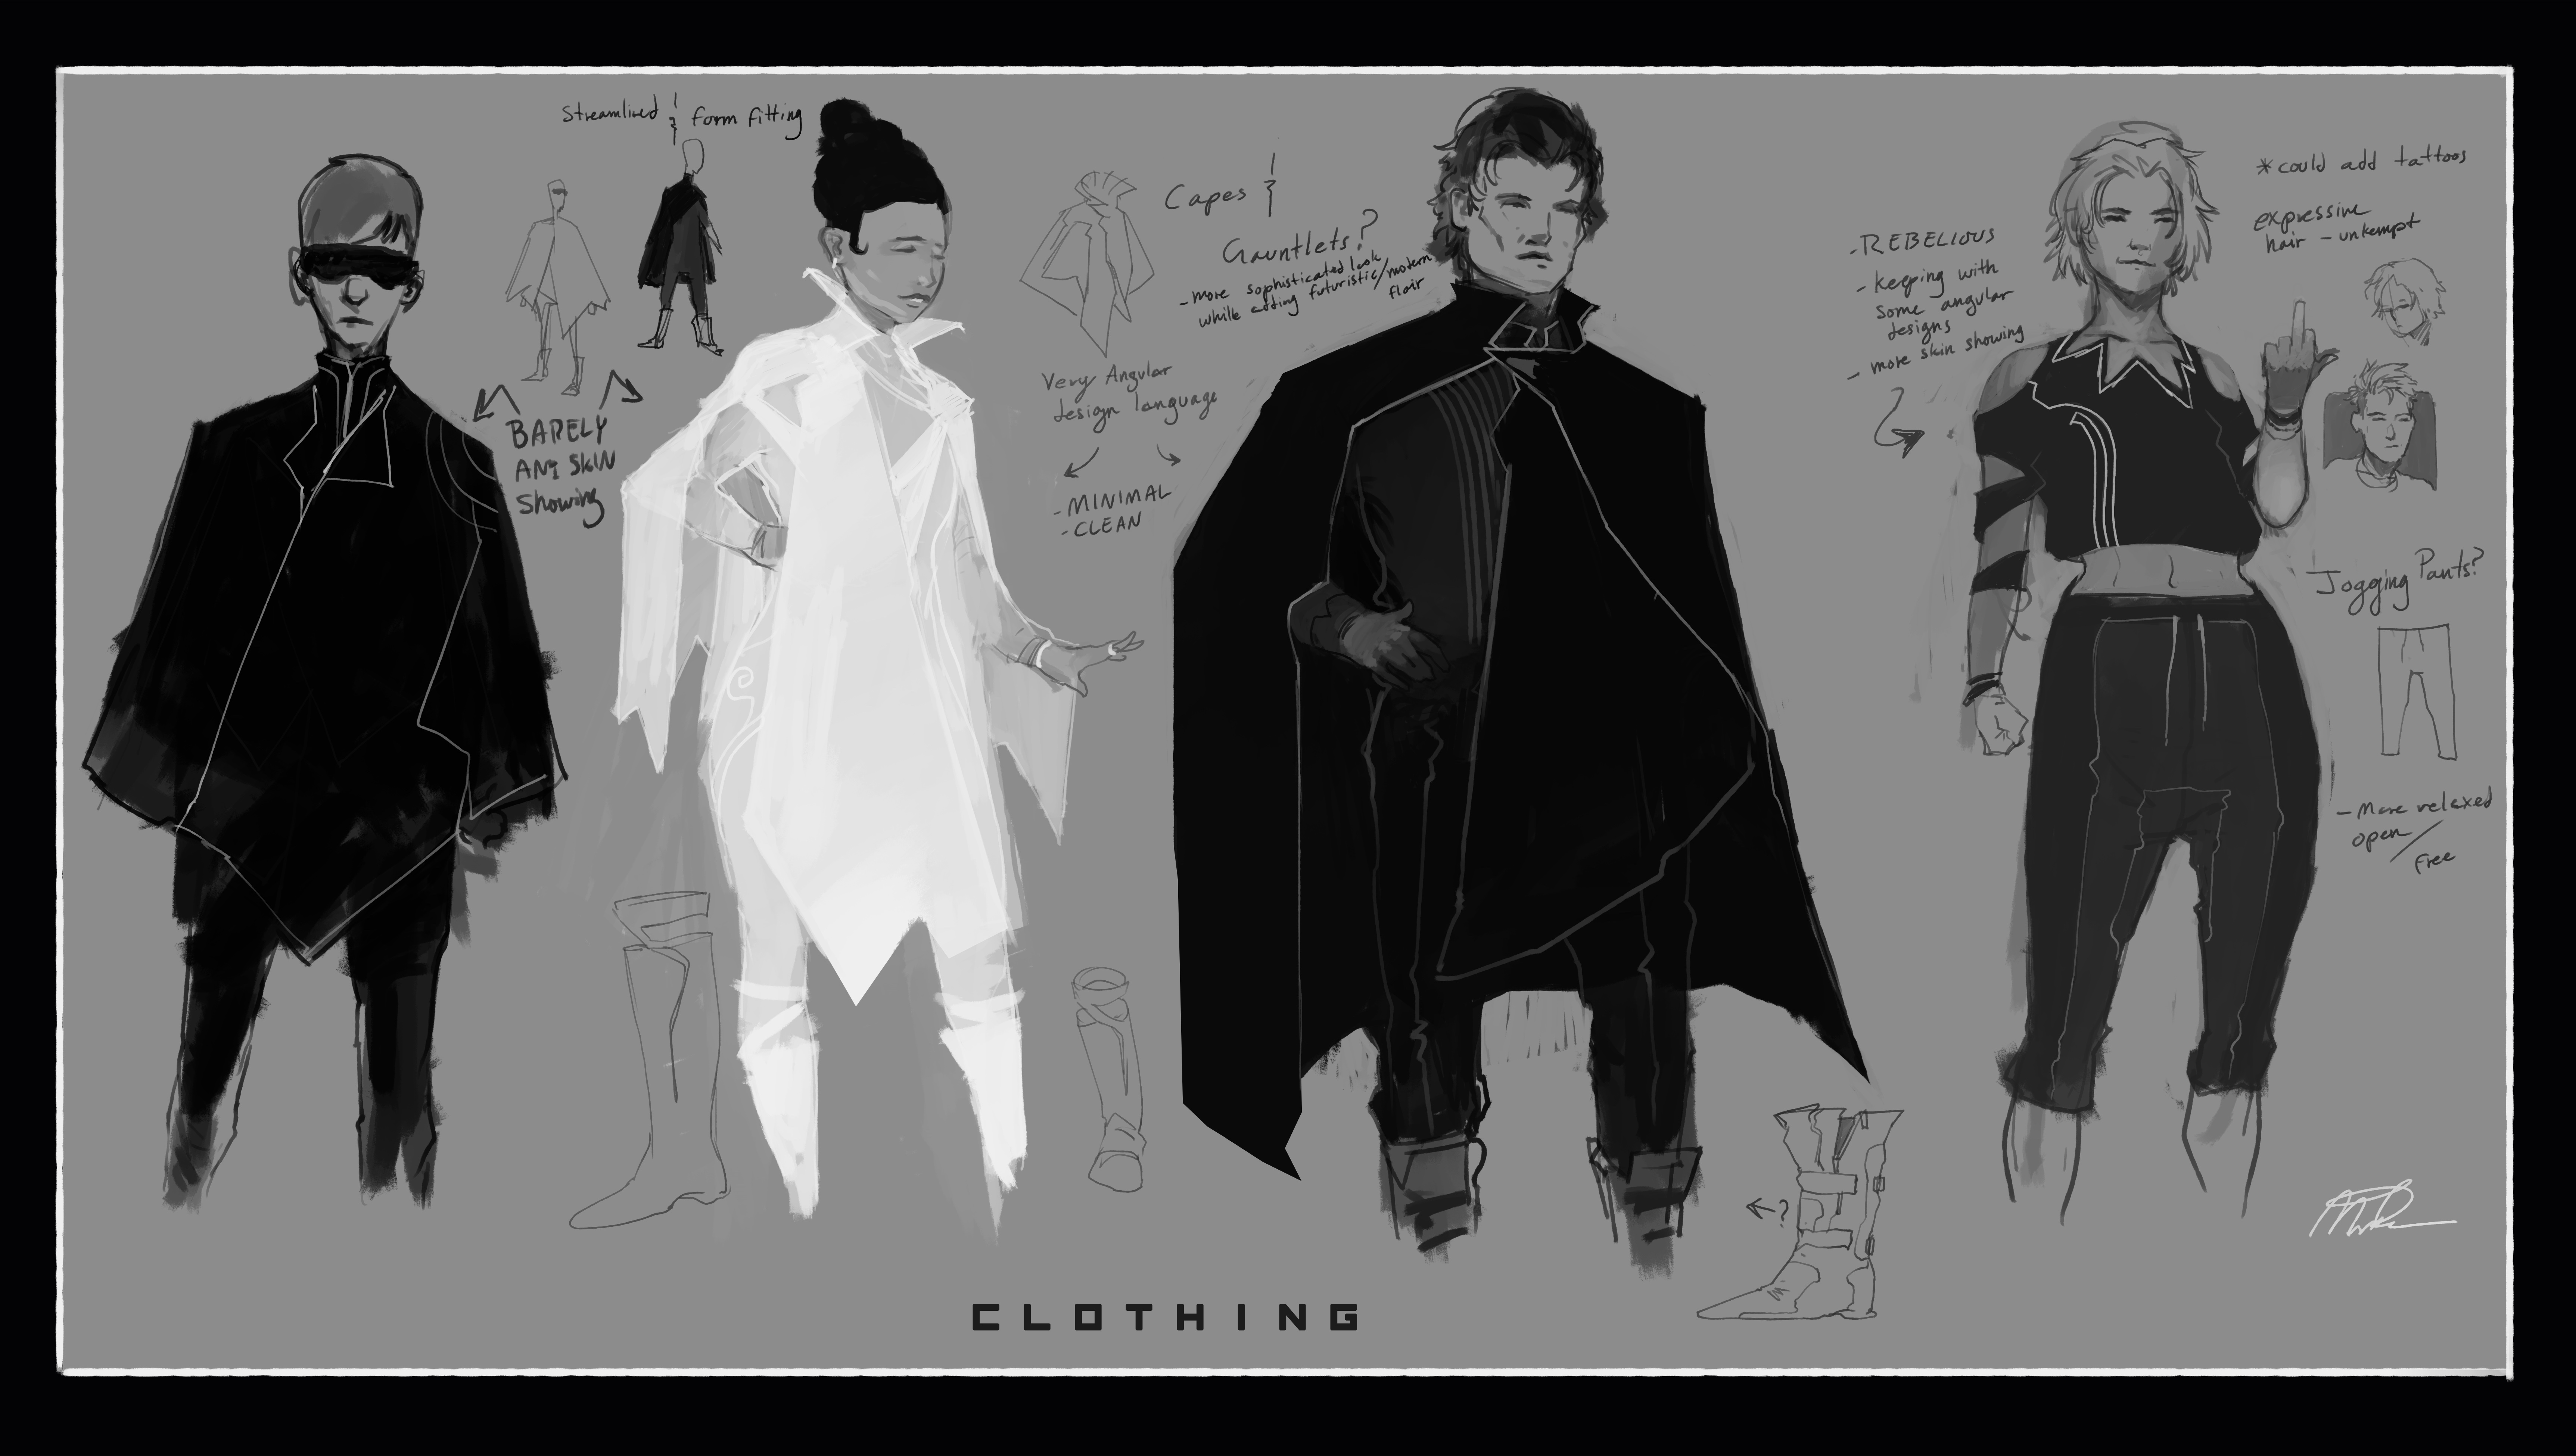 Clothing Aesthetic sketches for the rebels.